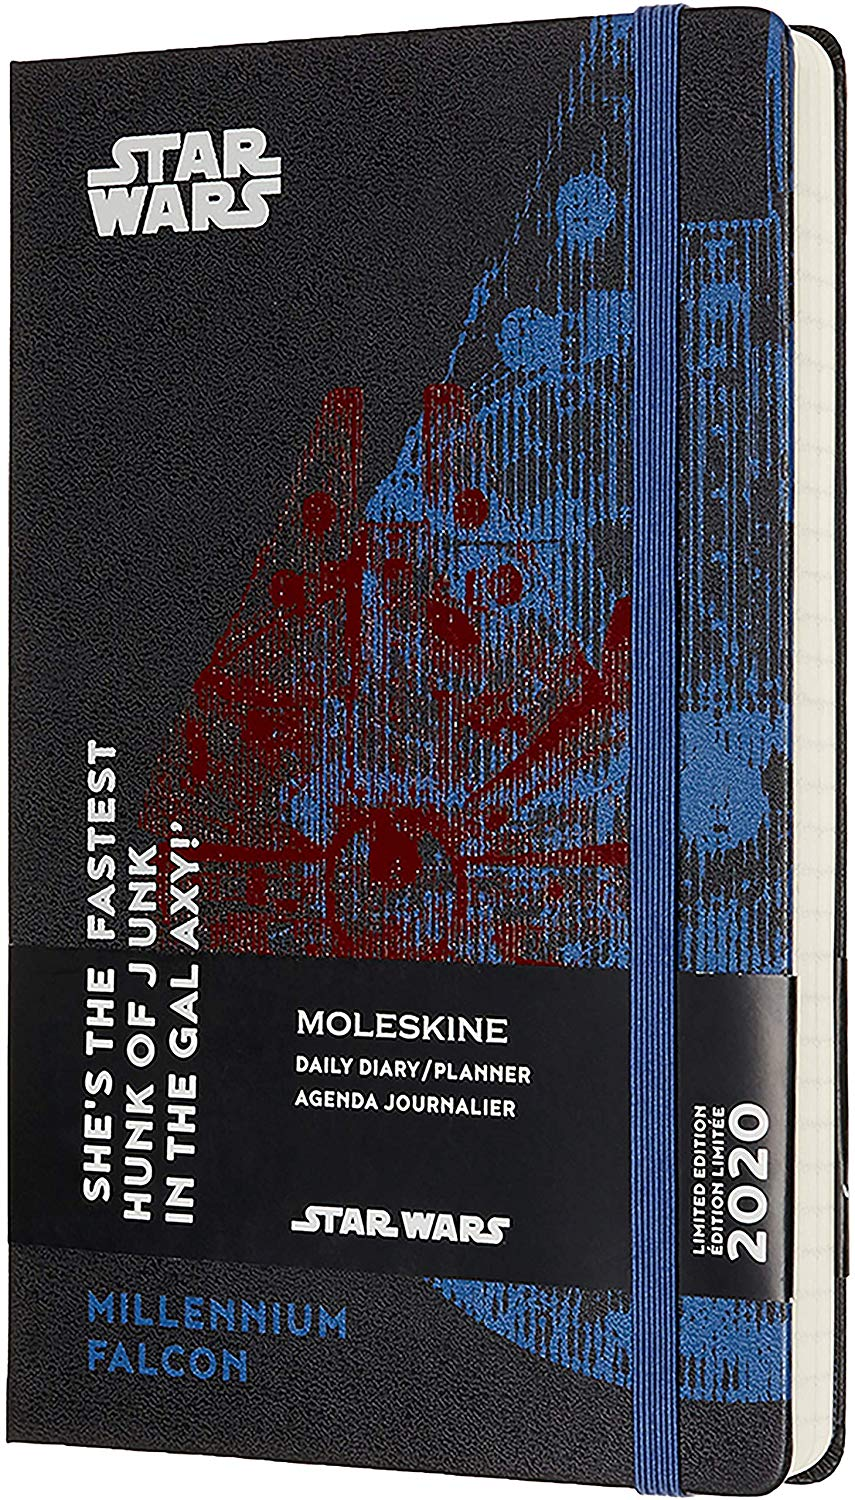 Agenda 2020 - Moleskine Limited Edition Star Wars 12-Month Daily Notebook Planner - Millennium Falcon, Large, Hard cover thumbnail